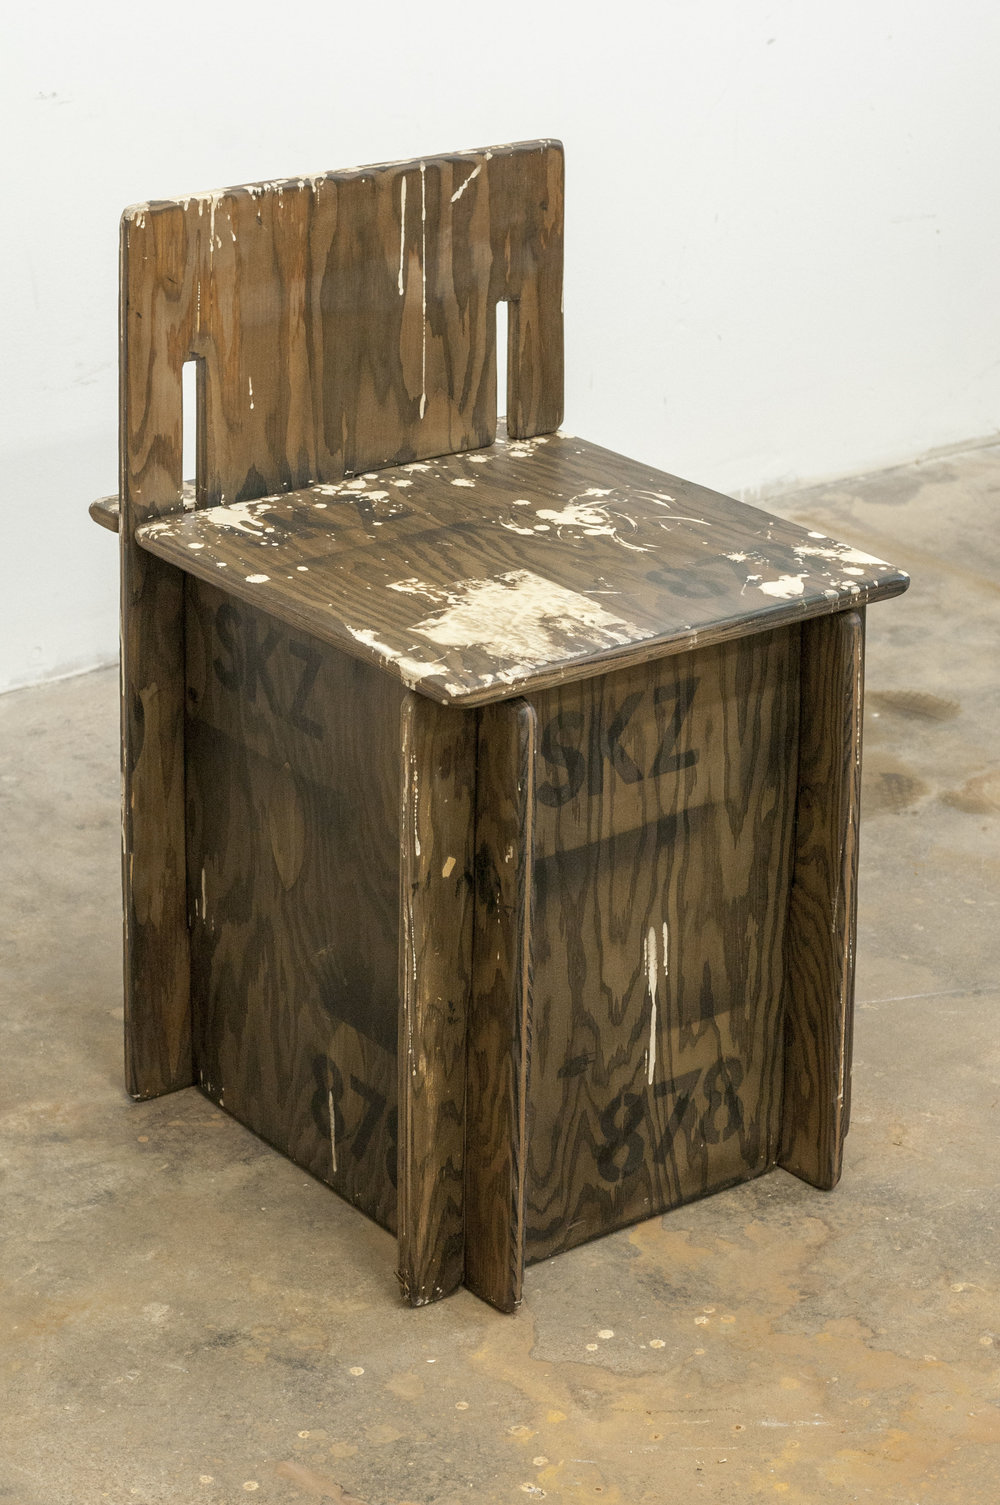 SKZ Student Chair Number 878, 2016 wood, oil 74 x 49 x 43 cm 29 1/8 x 19 9/32 x 16 15/16 inches